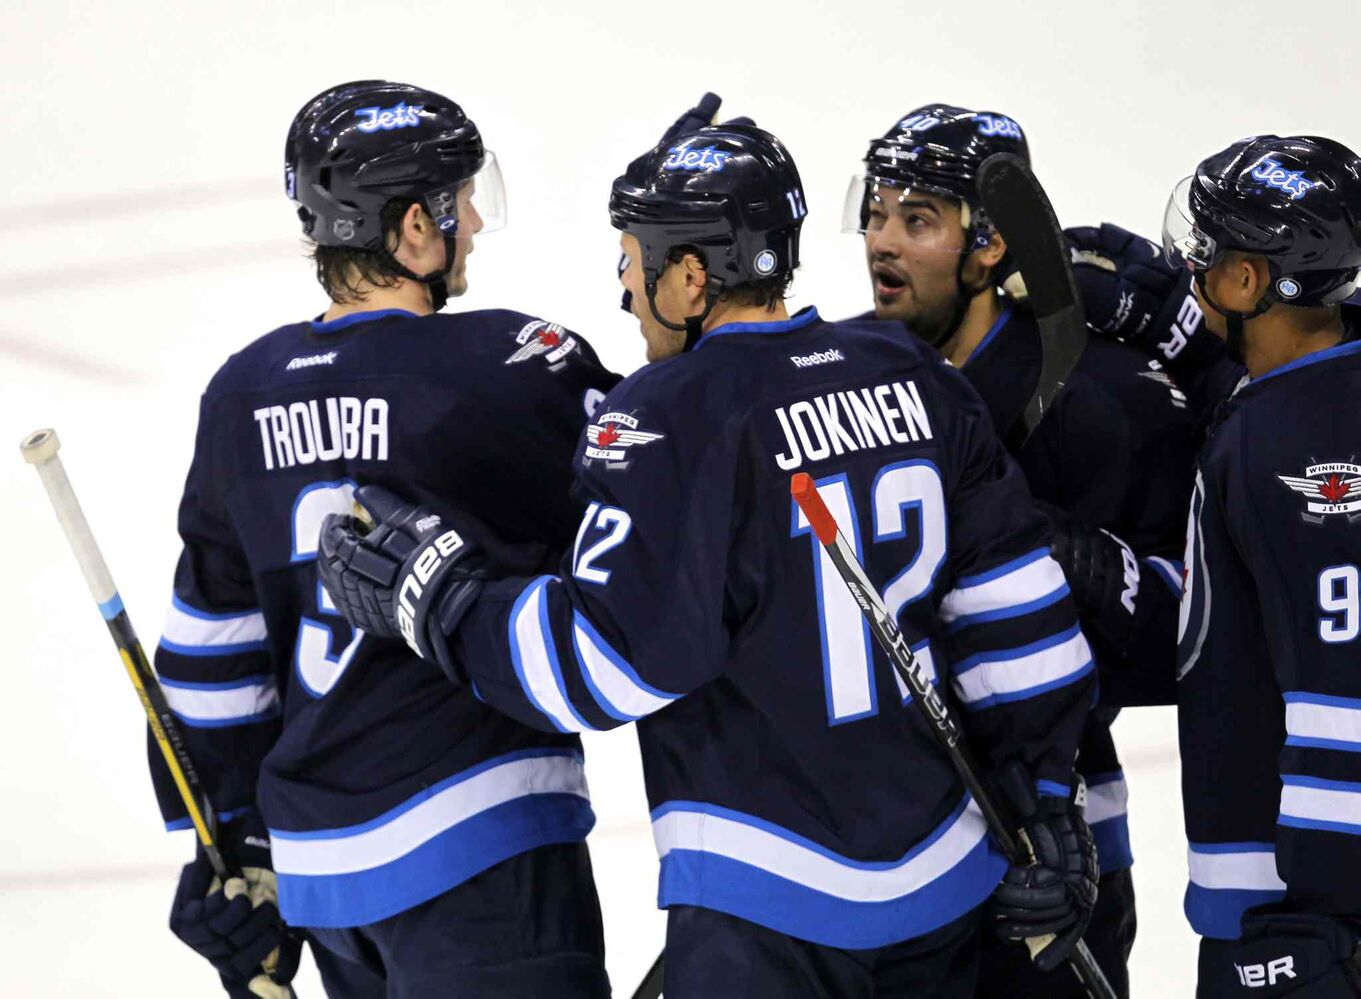 From left: Jacob Trouba, Olli Jokinen, Devon Setoguchi and Evander Kane convene after Setoguchi scored for the Jets in the first period.